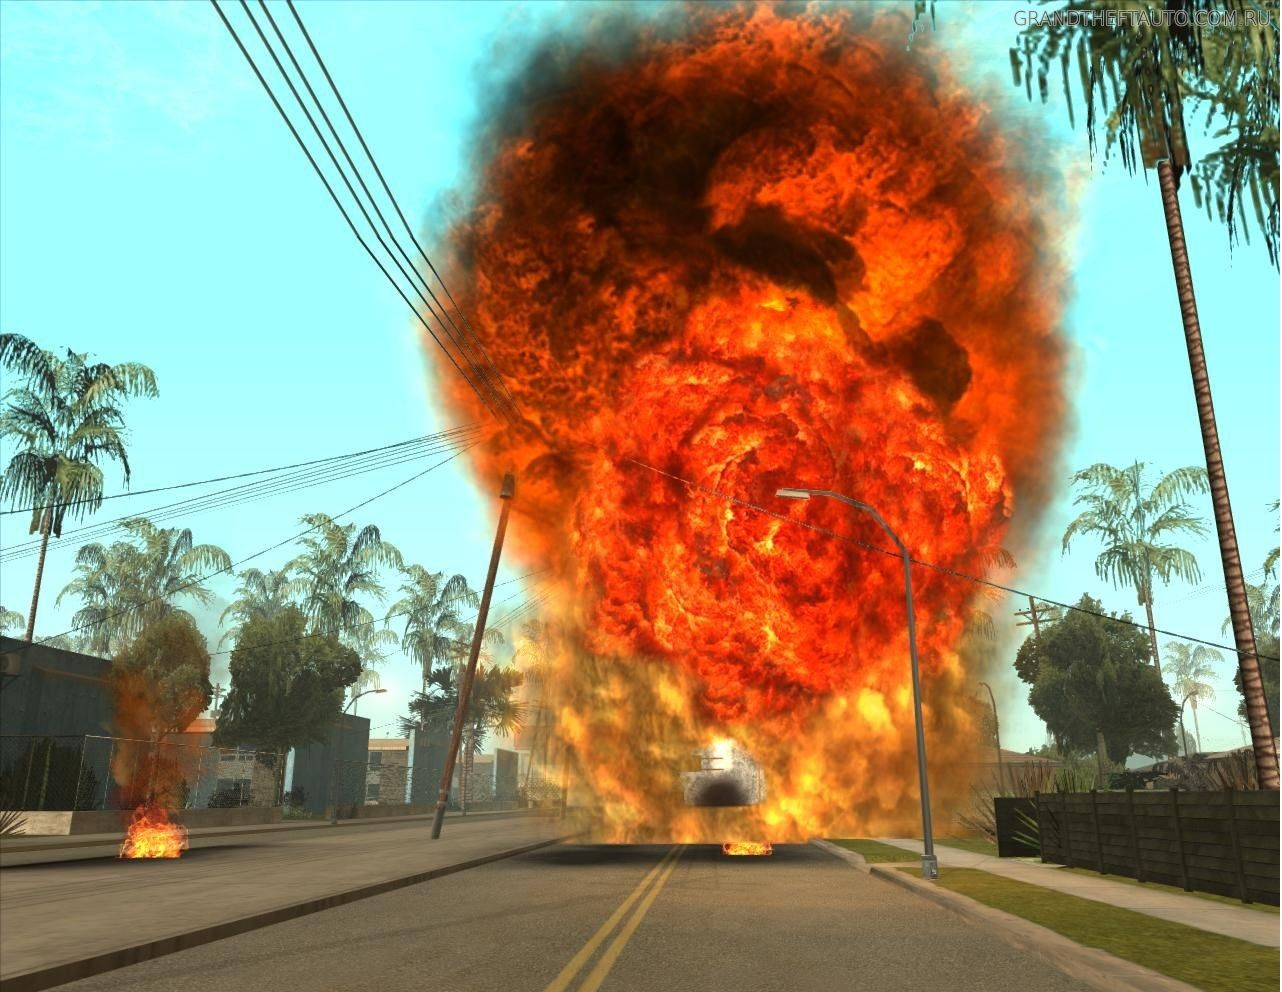 Effects for GTA: San Andreas